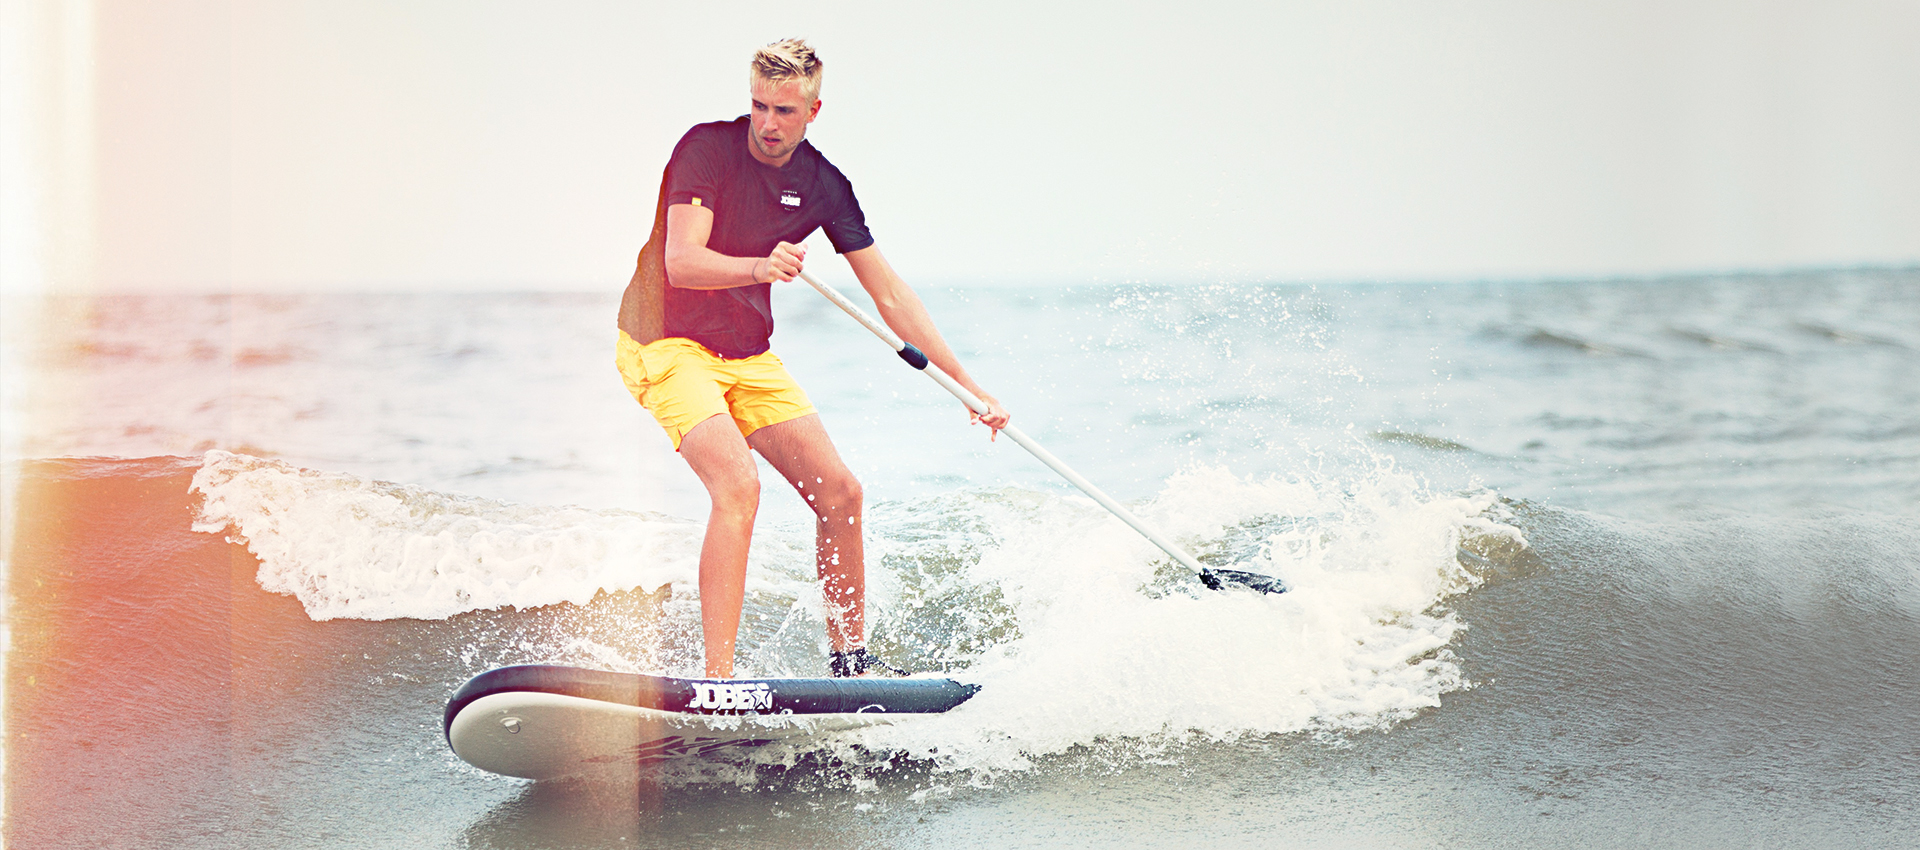 Whatever your style is, we've got the perfect SUP for you!